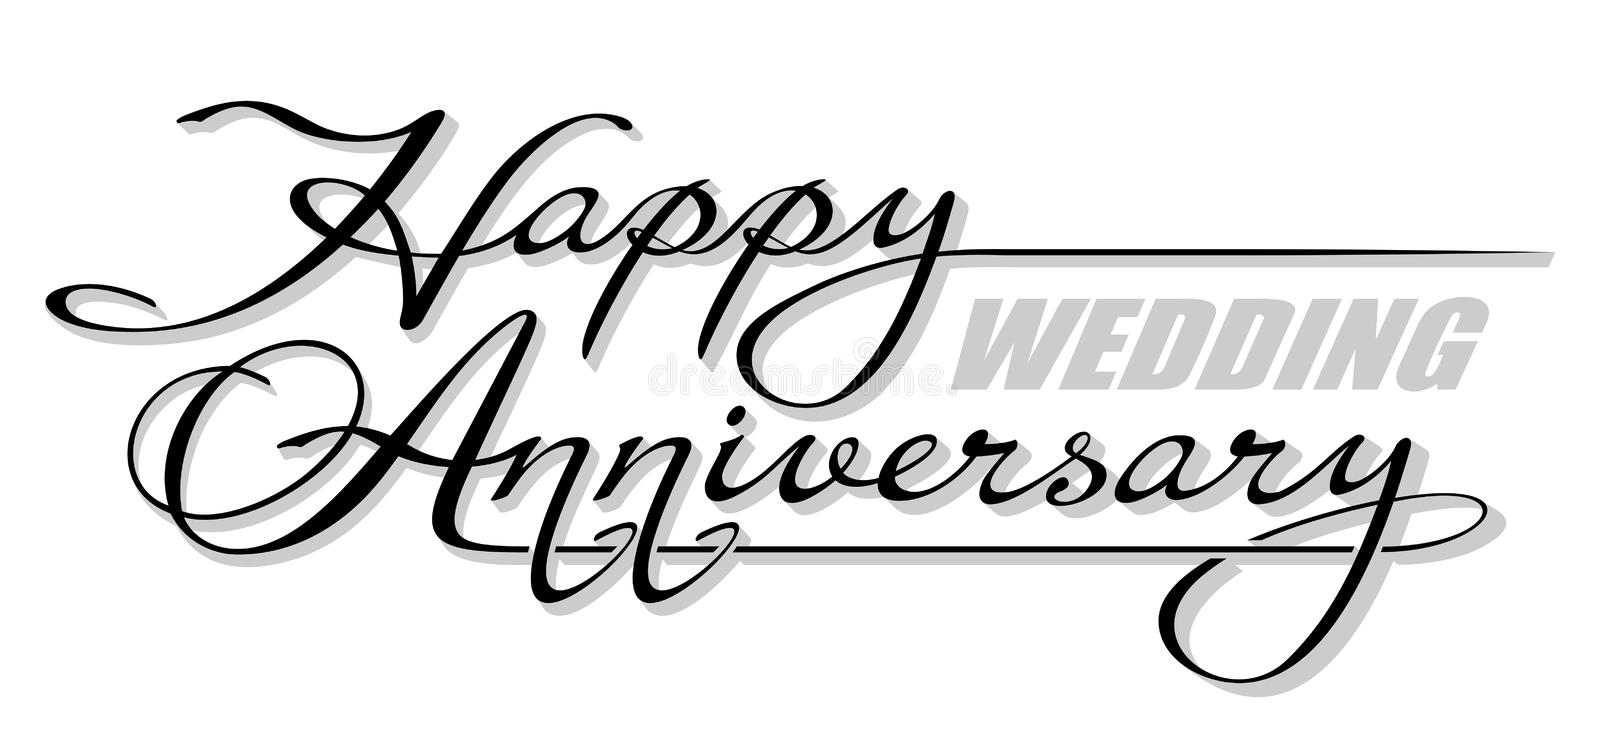 """Underscore handwritten text """"Happy Wedding Anniversary"""" with shadow. Hand drawn calligraphy lettering with copy space vector illustration"""